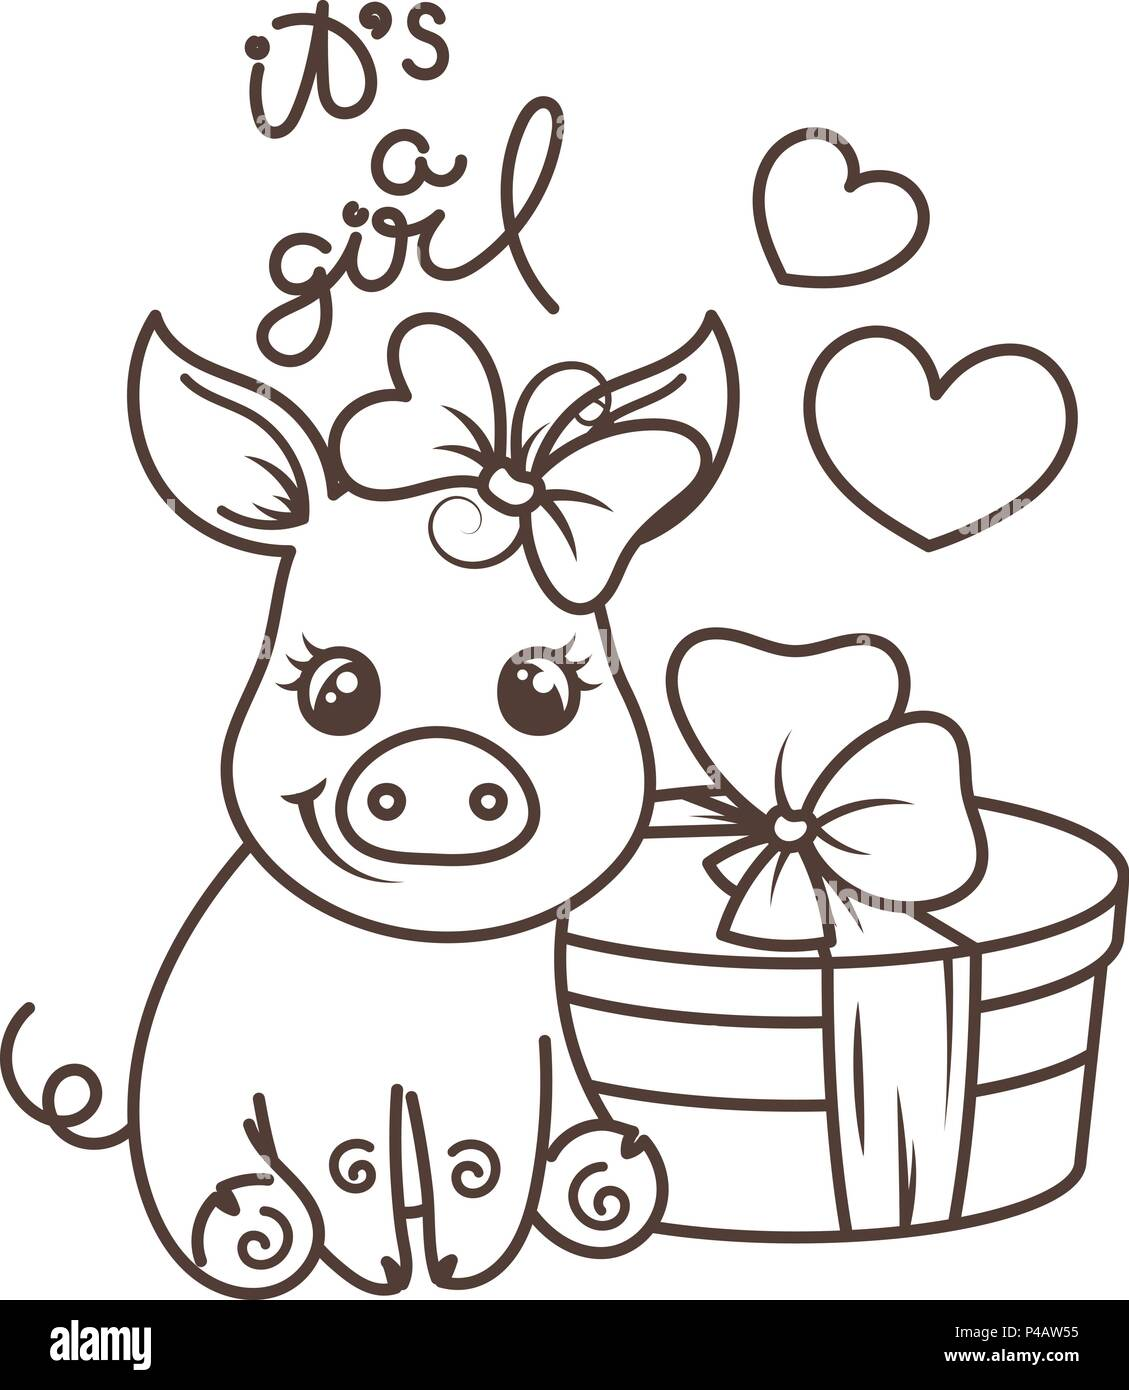 Happy Birthday Cute Cartoon Baby Pig With Holiday Box Vector Illustration Coloring Page Stock Vector Image Art Alamy